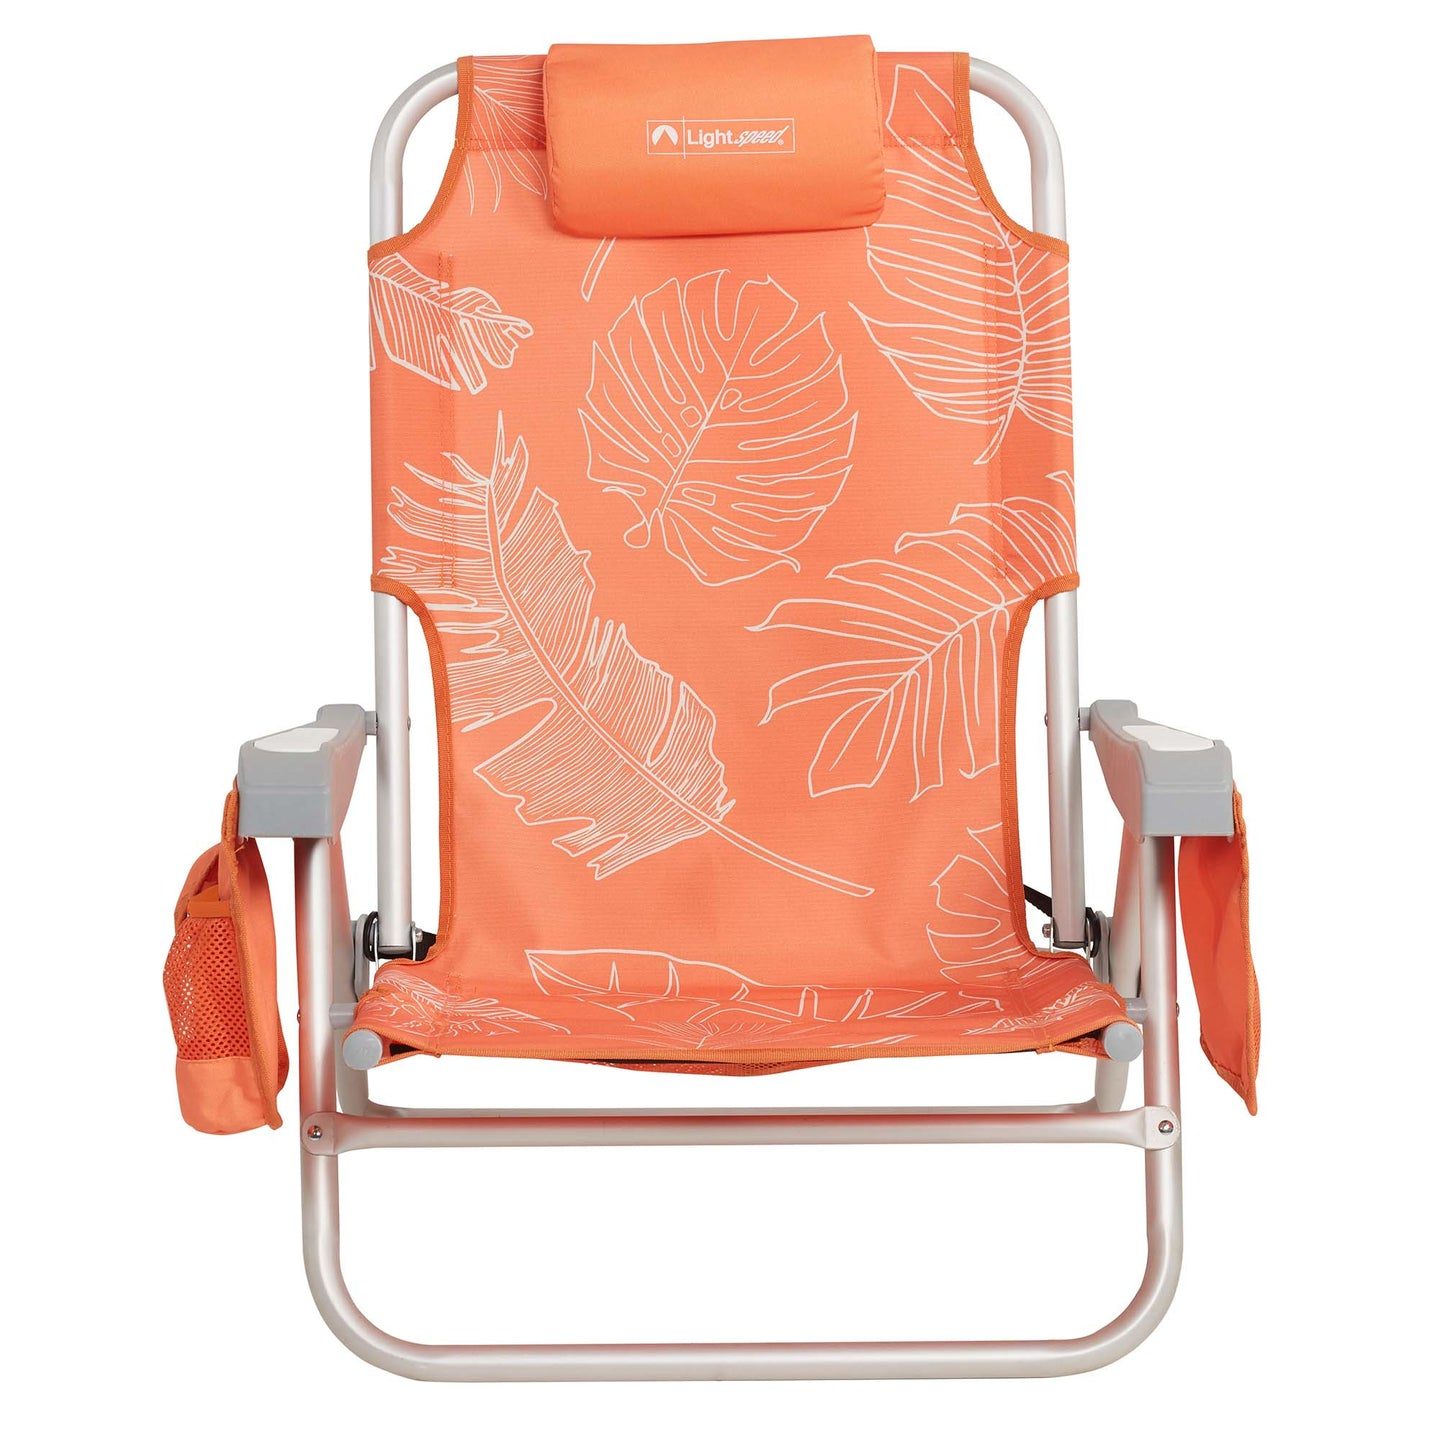 Backpack style beach chair. White outlined palm fronds on bright orange background, integrated headrest and 2 side pockets.